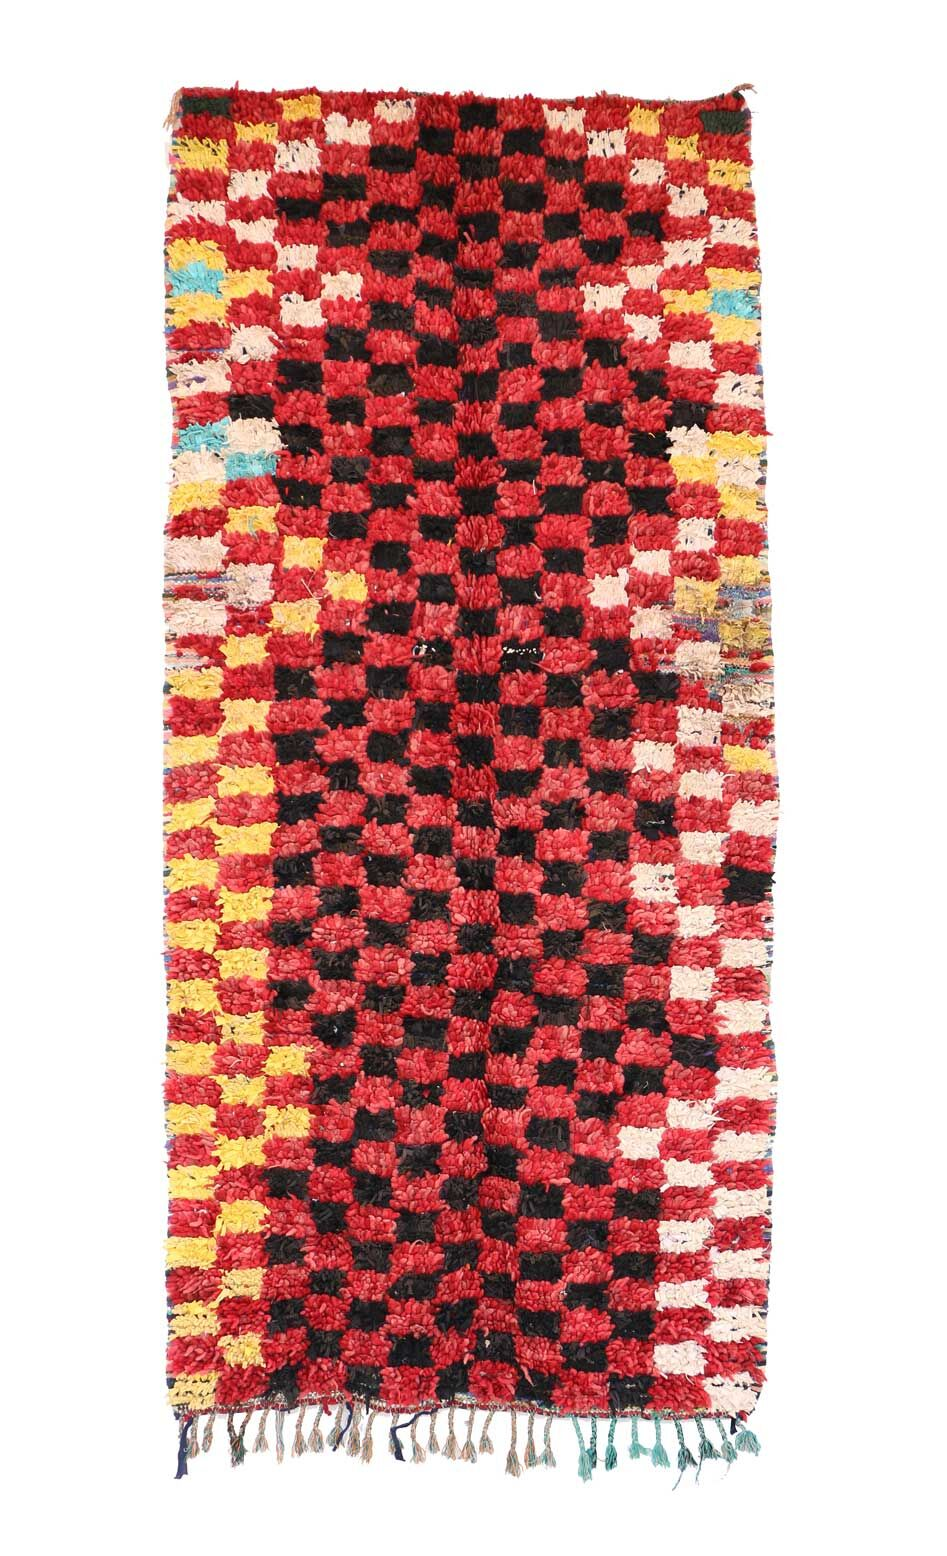 One-of-a-Kind Boucherouite Moroccan Hand-Knotted Wool Red/Black Area Rug